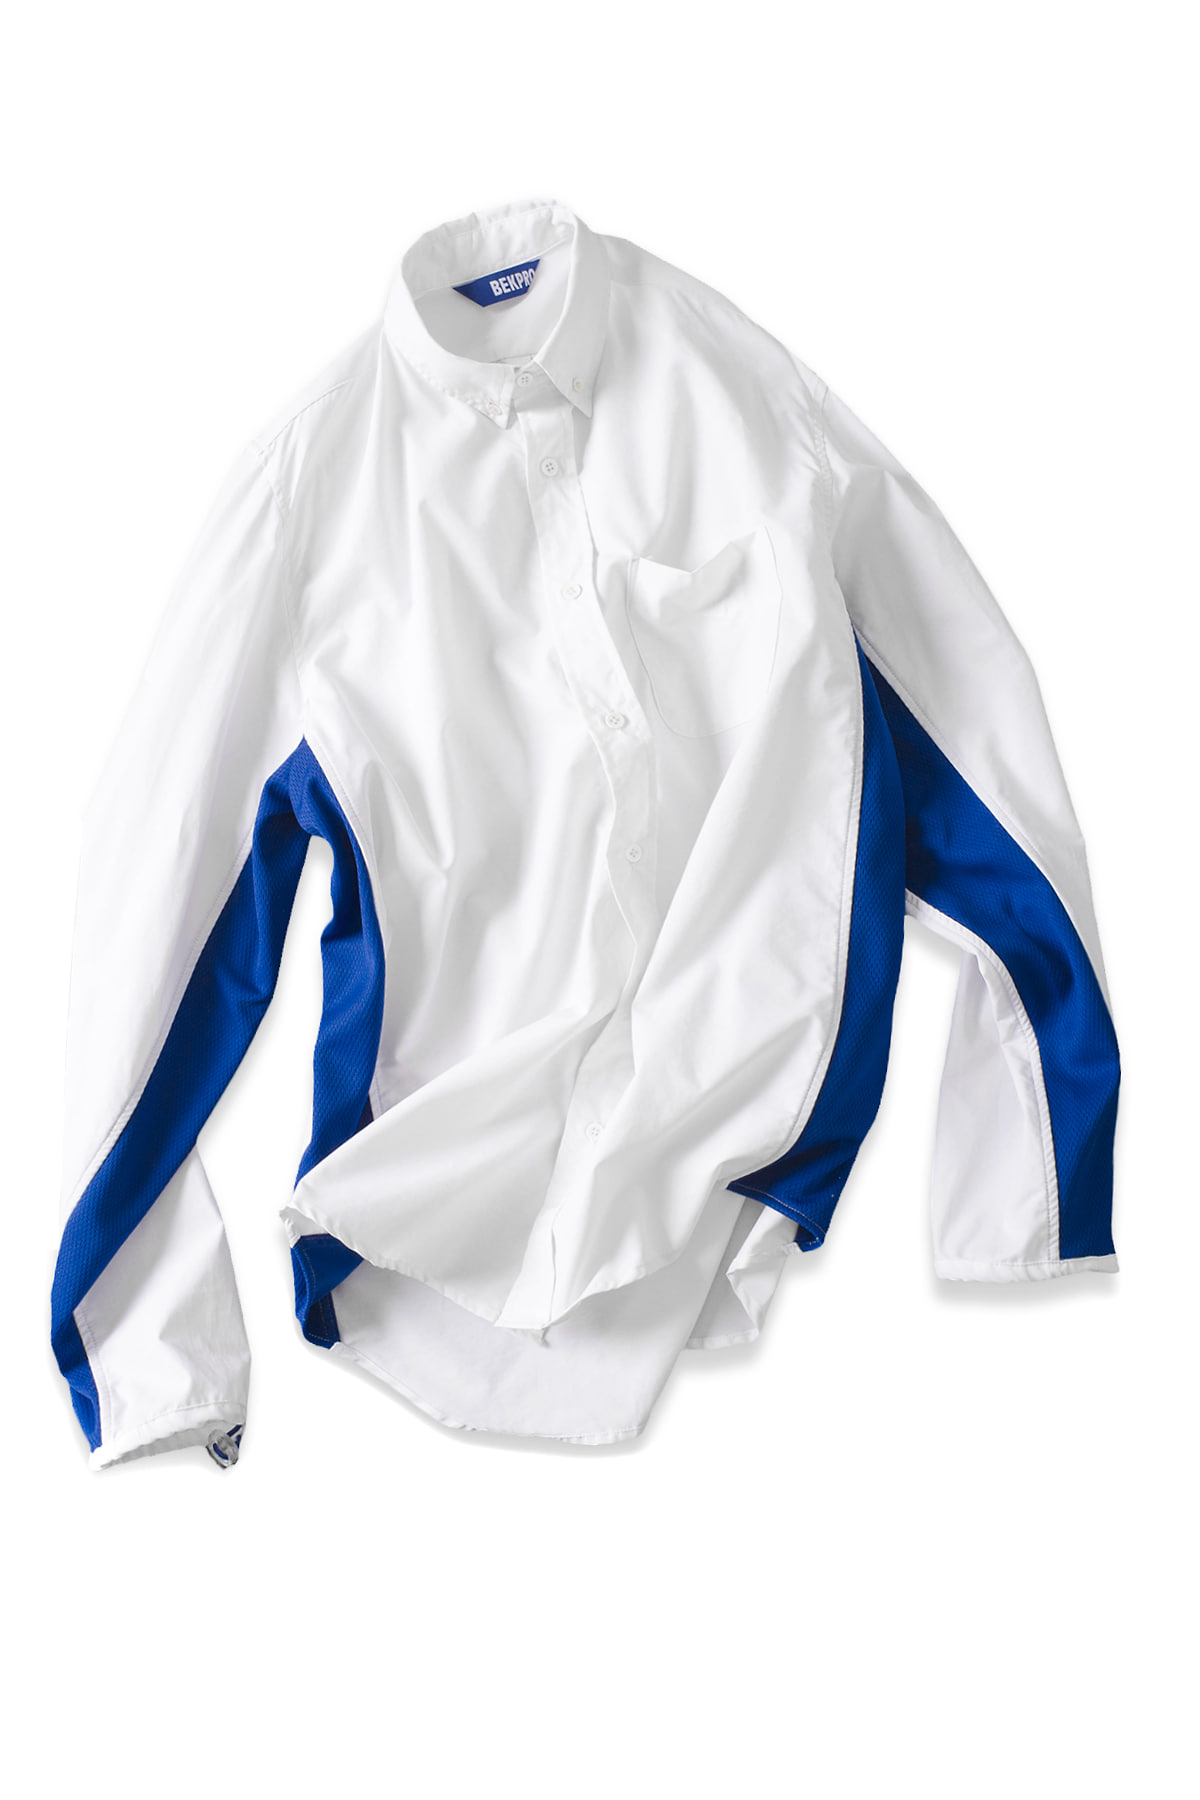 BEKPRO : Mesh Side Panel Shirt (White / Blue)